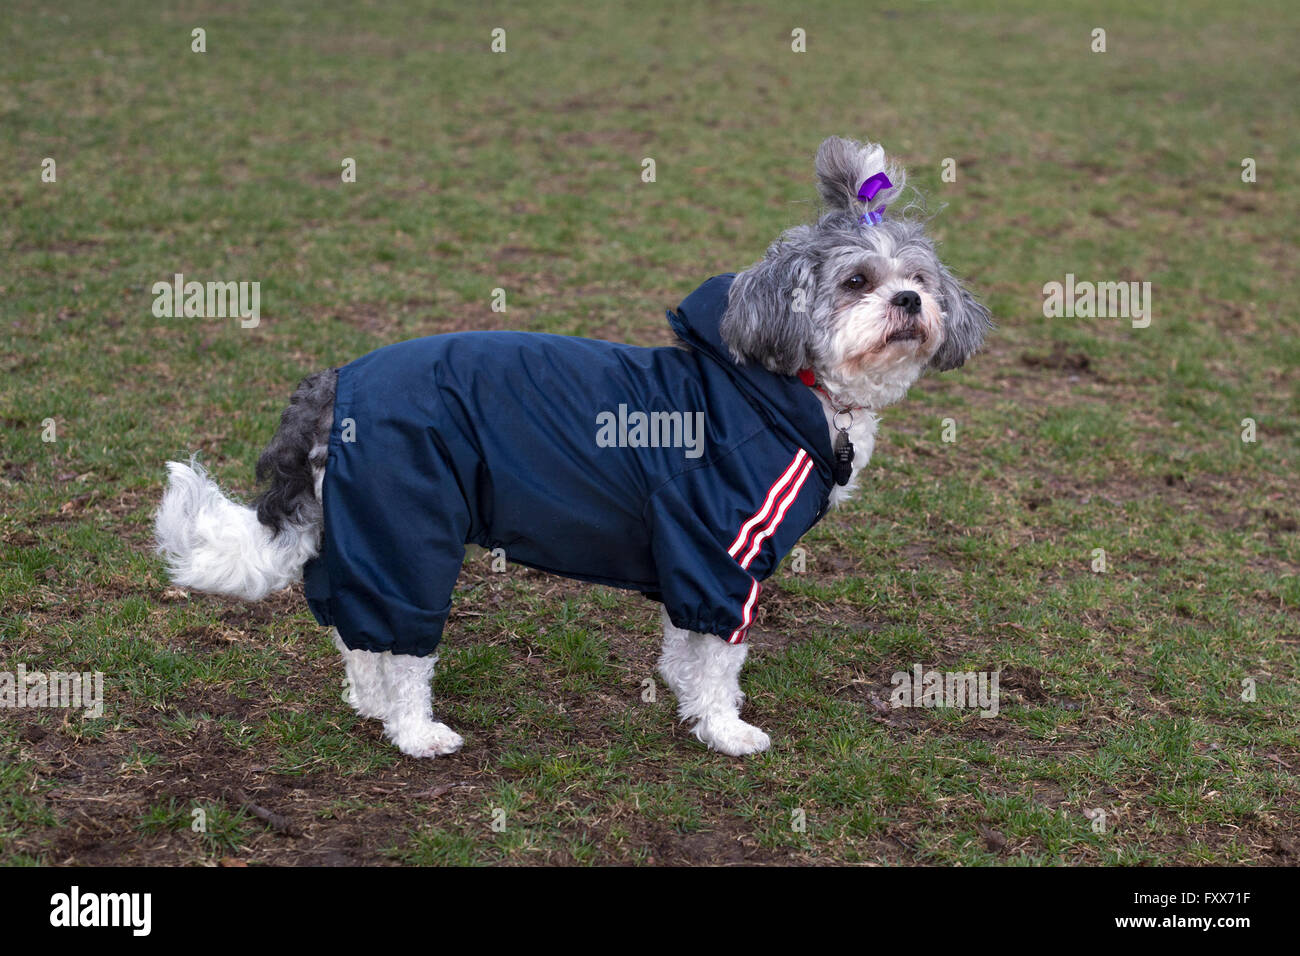 Dog wearing raincoat - Stock Image